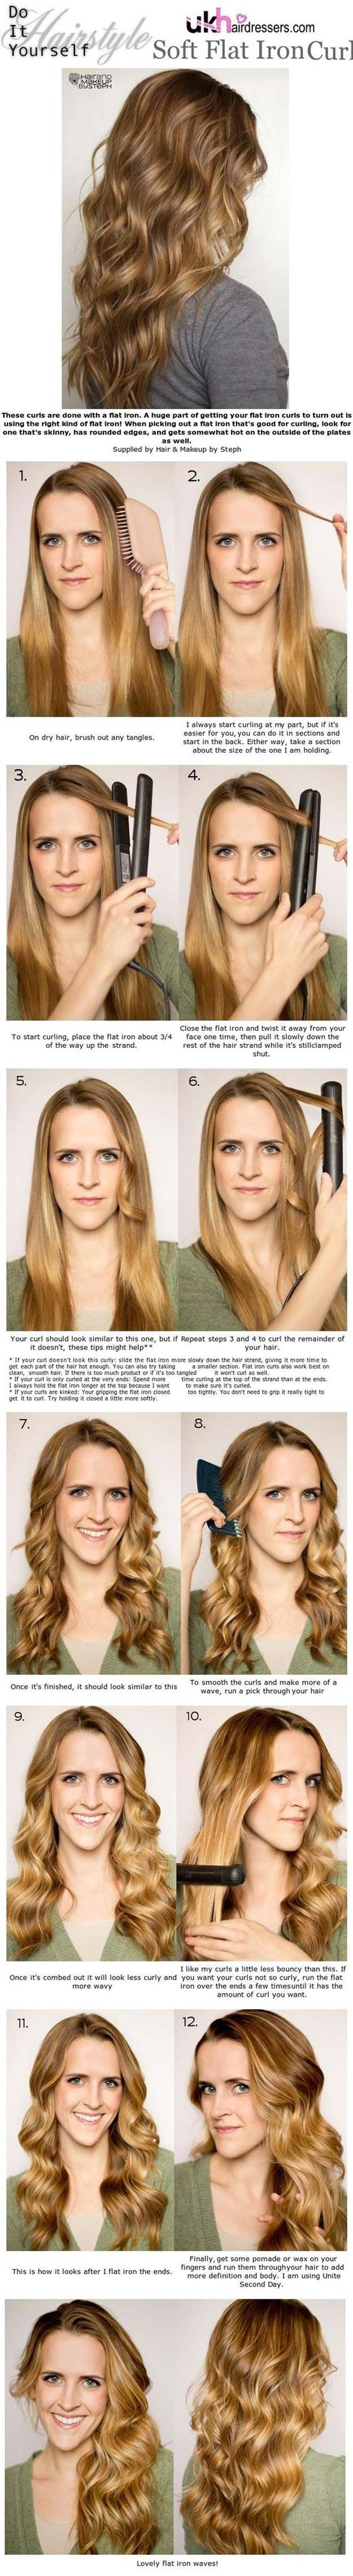 Cool Hairstyles You Can Do With Your Flat Iron - Soft Flat Iron Curls - Easy Step By Step Tutorials And Hair Tips Every Girl Should Know To Get The Style And Look They Want Using A Flat Iron. Videos and Image How To's That Provide Simple Tips and Tricks For Using A Flat Iron To Get Hairstyles Quickly And Without Lots of Beauty Products - thegoddess.com/hairstyles-flat-iron